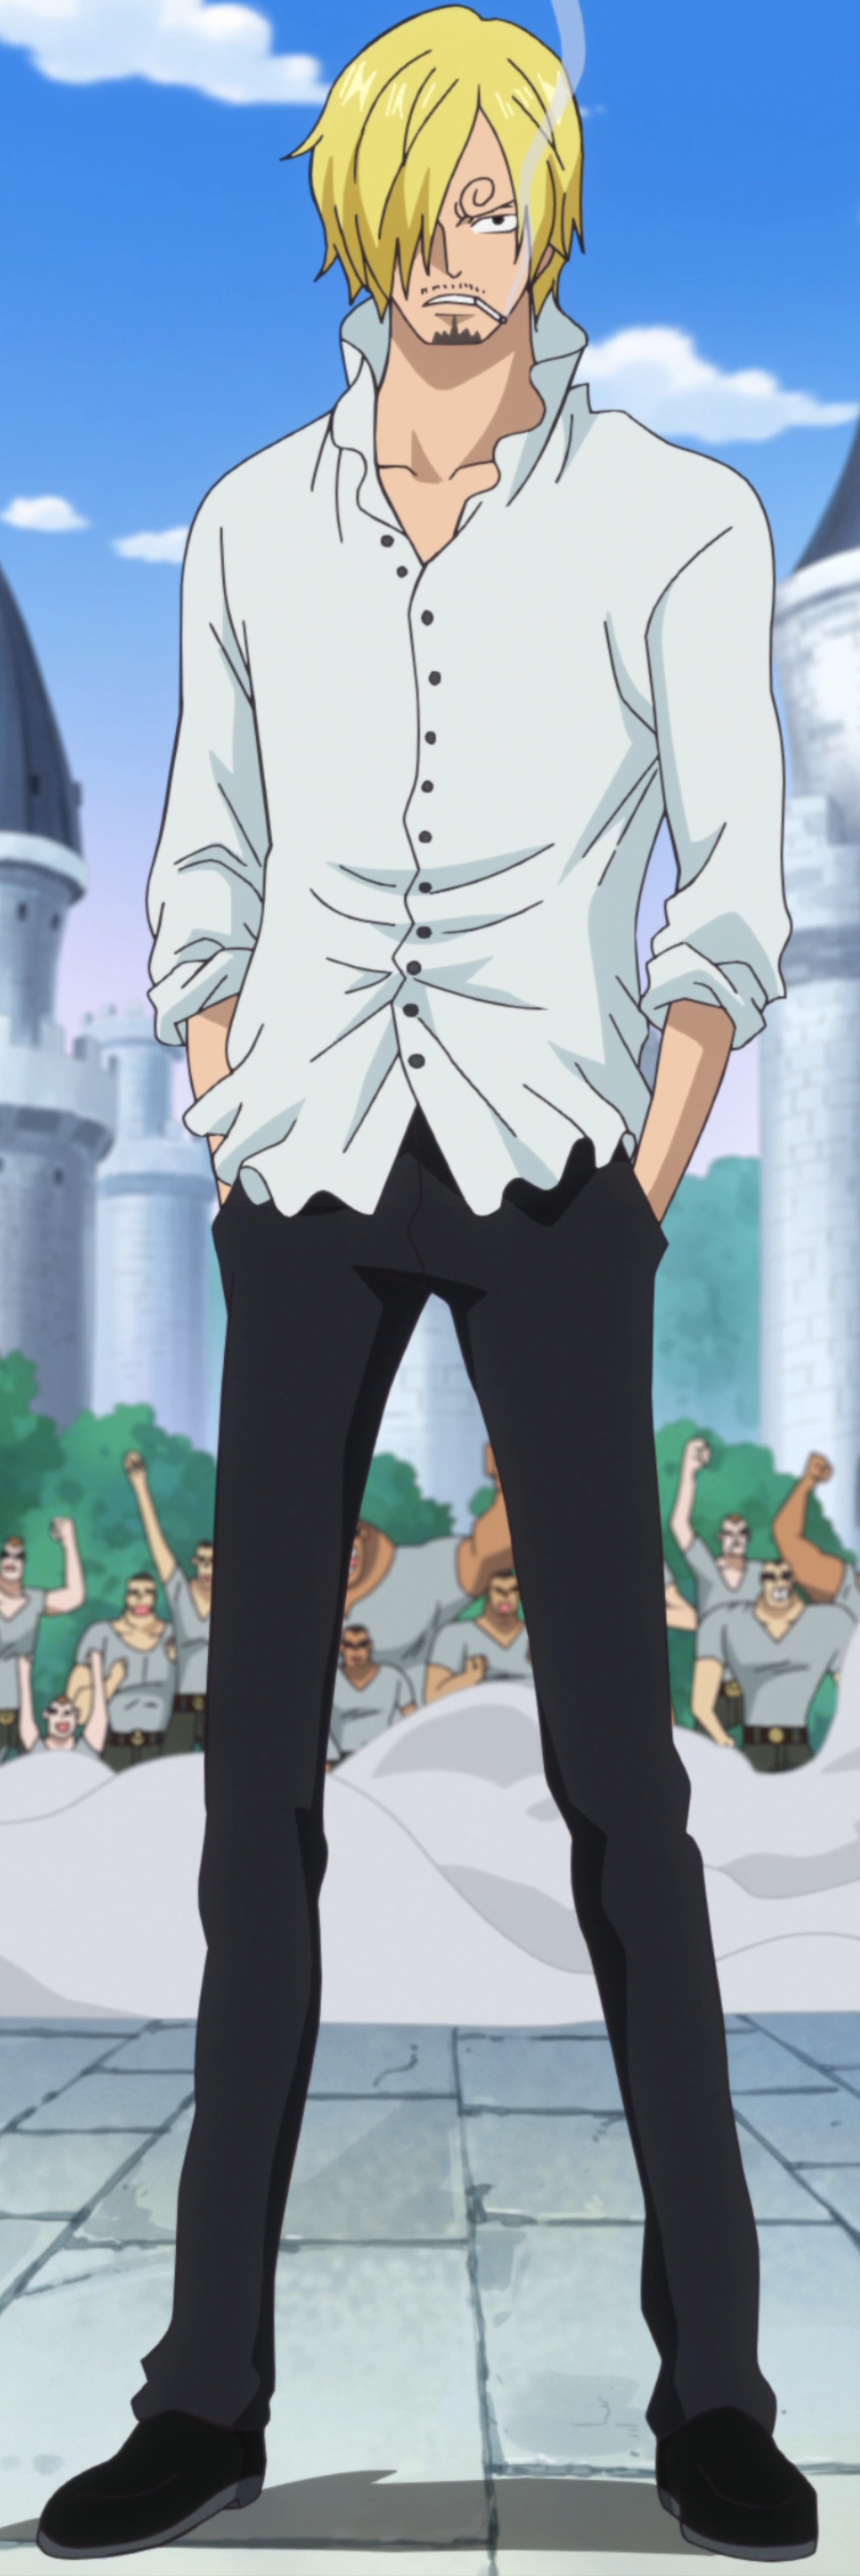 Sanji One Piece Wiki Fandom